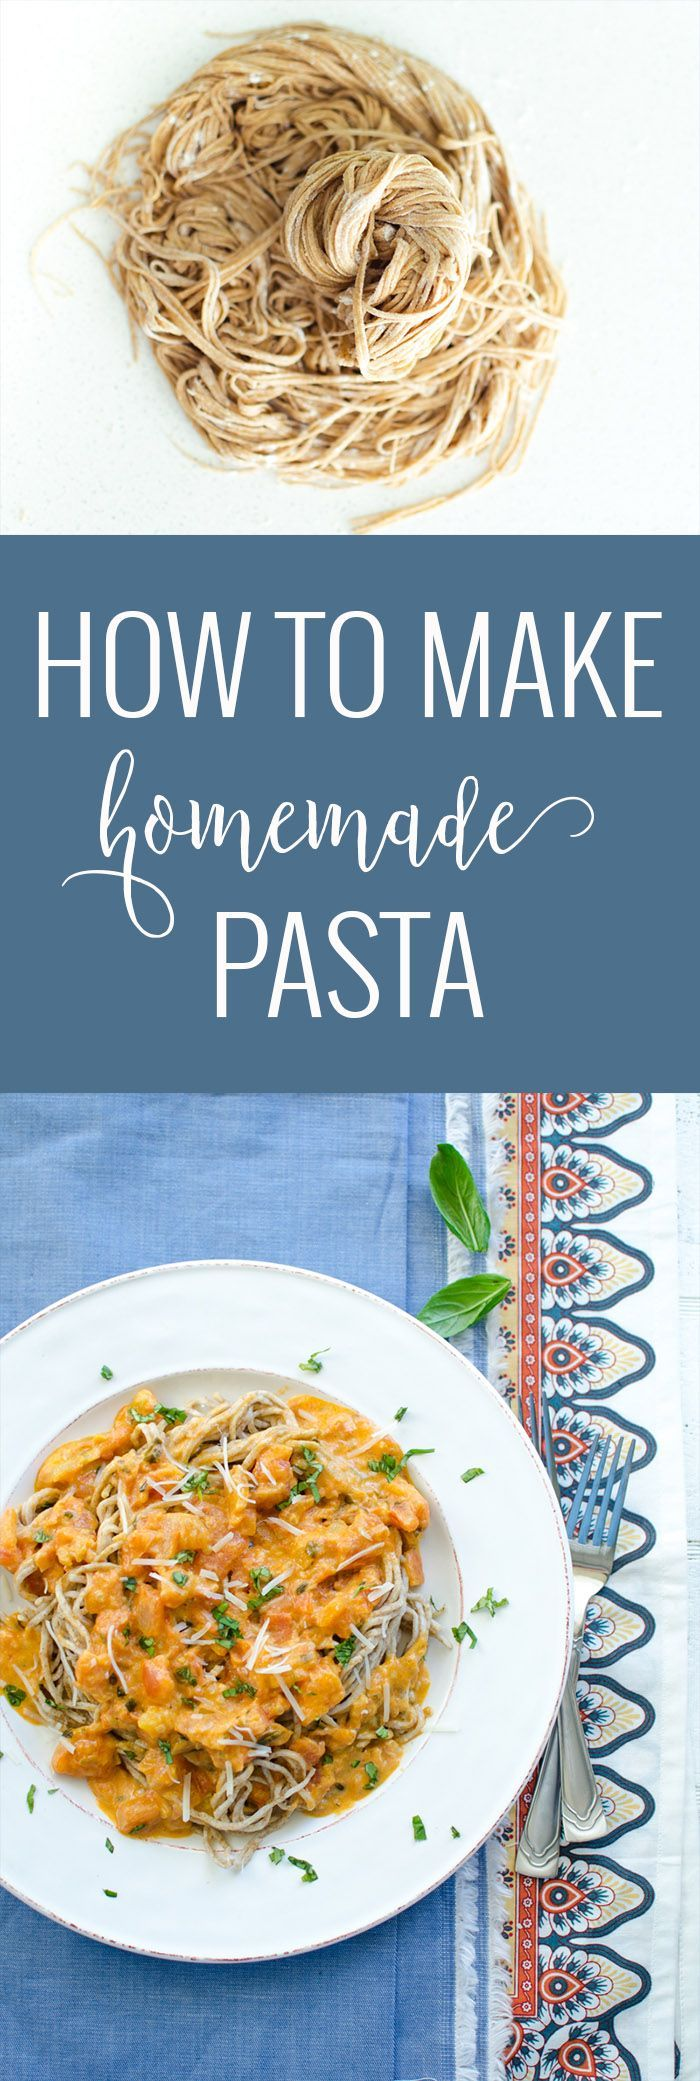 Homemade Pasta Recipe | how to make homemade pasta | easy homemade pasta recipe | homemade pasta recipes | how to use the kitchenaid pasta attachment | kitchenaid pasta recipes | how to make fresh pasta || Oh So Delicioso